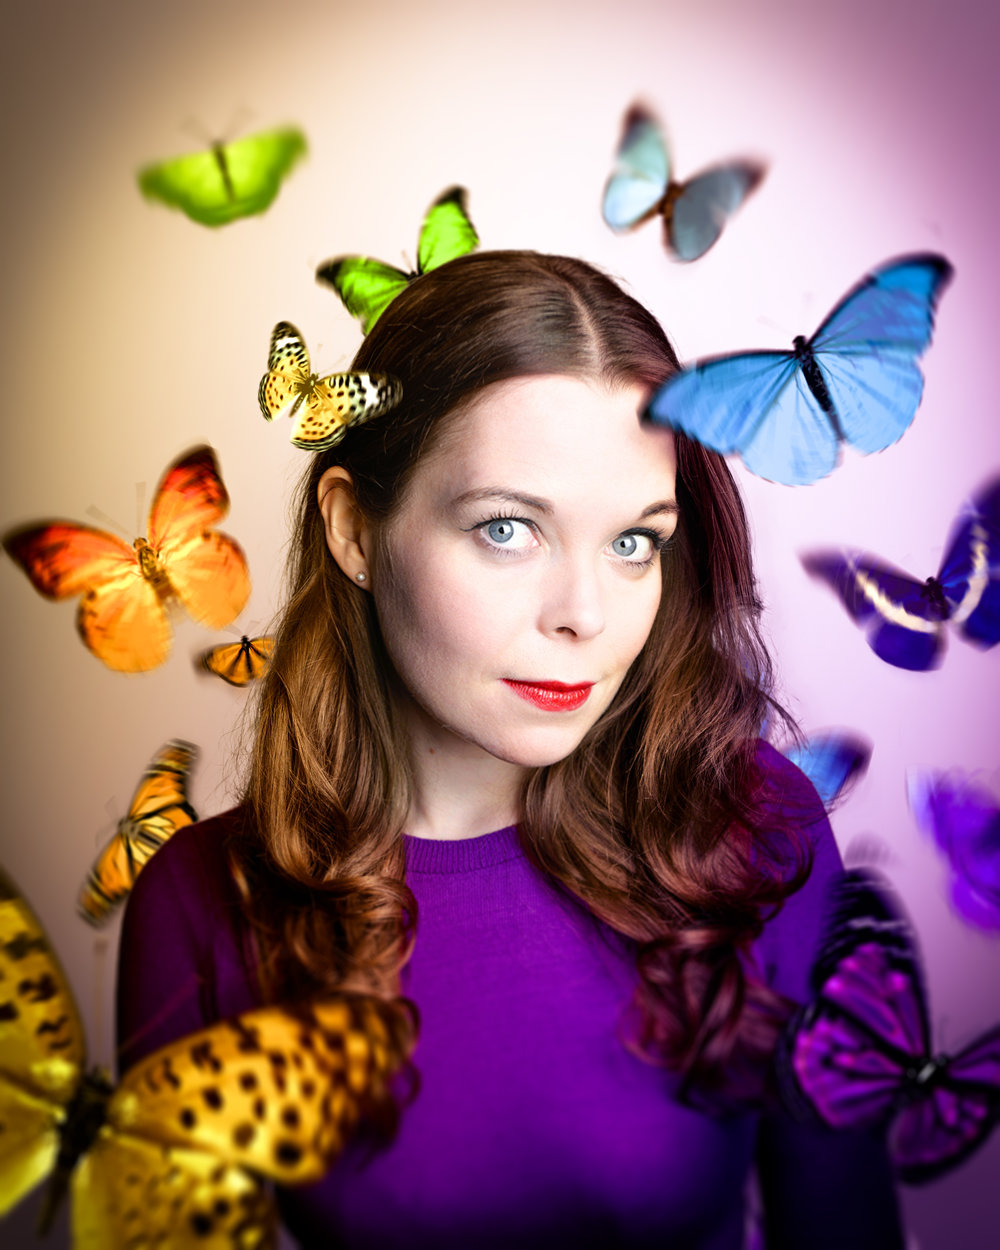 Juliette Burton Butterfly Effect press image.jpg